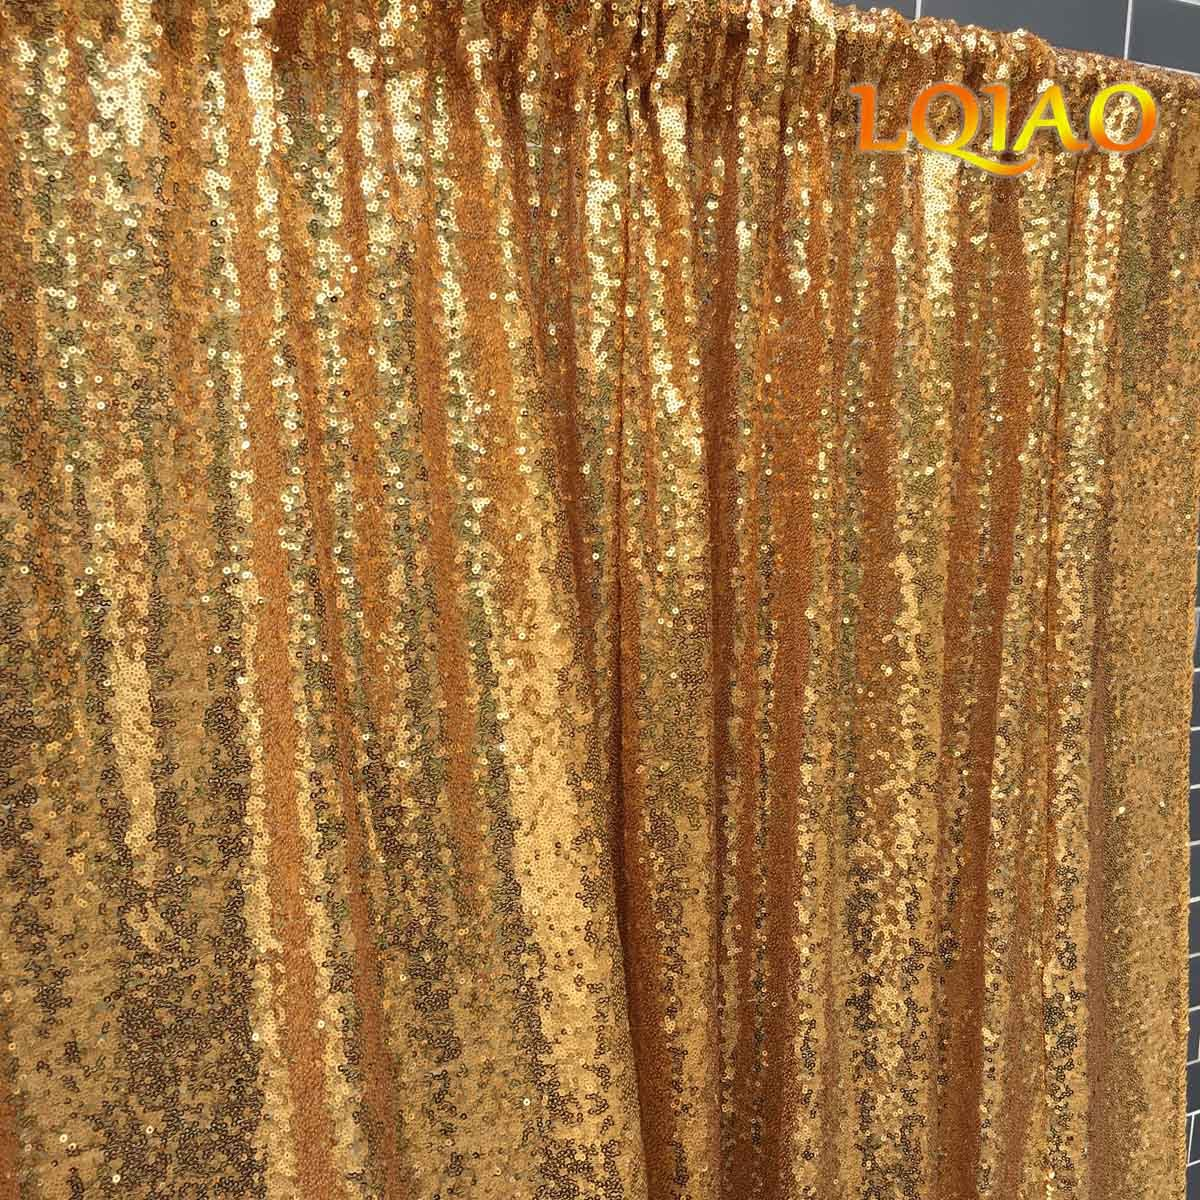 LQIAO Wedding Christmas Backdrop Glitter Gold 20FTx10FT Sequin Backdrop Window Curtain Photo Booth Photography Party Decoration